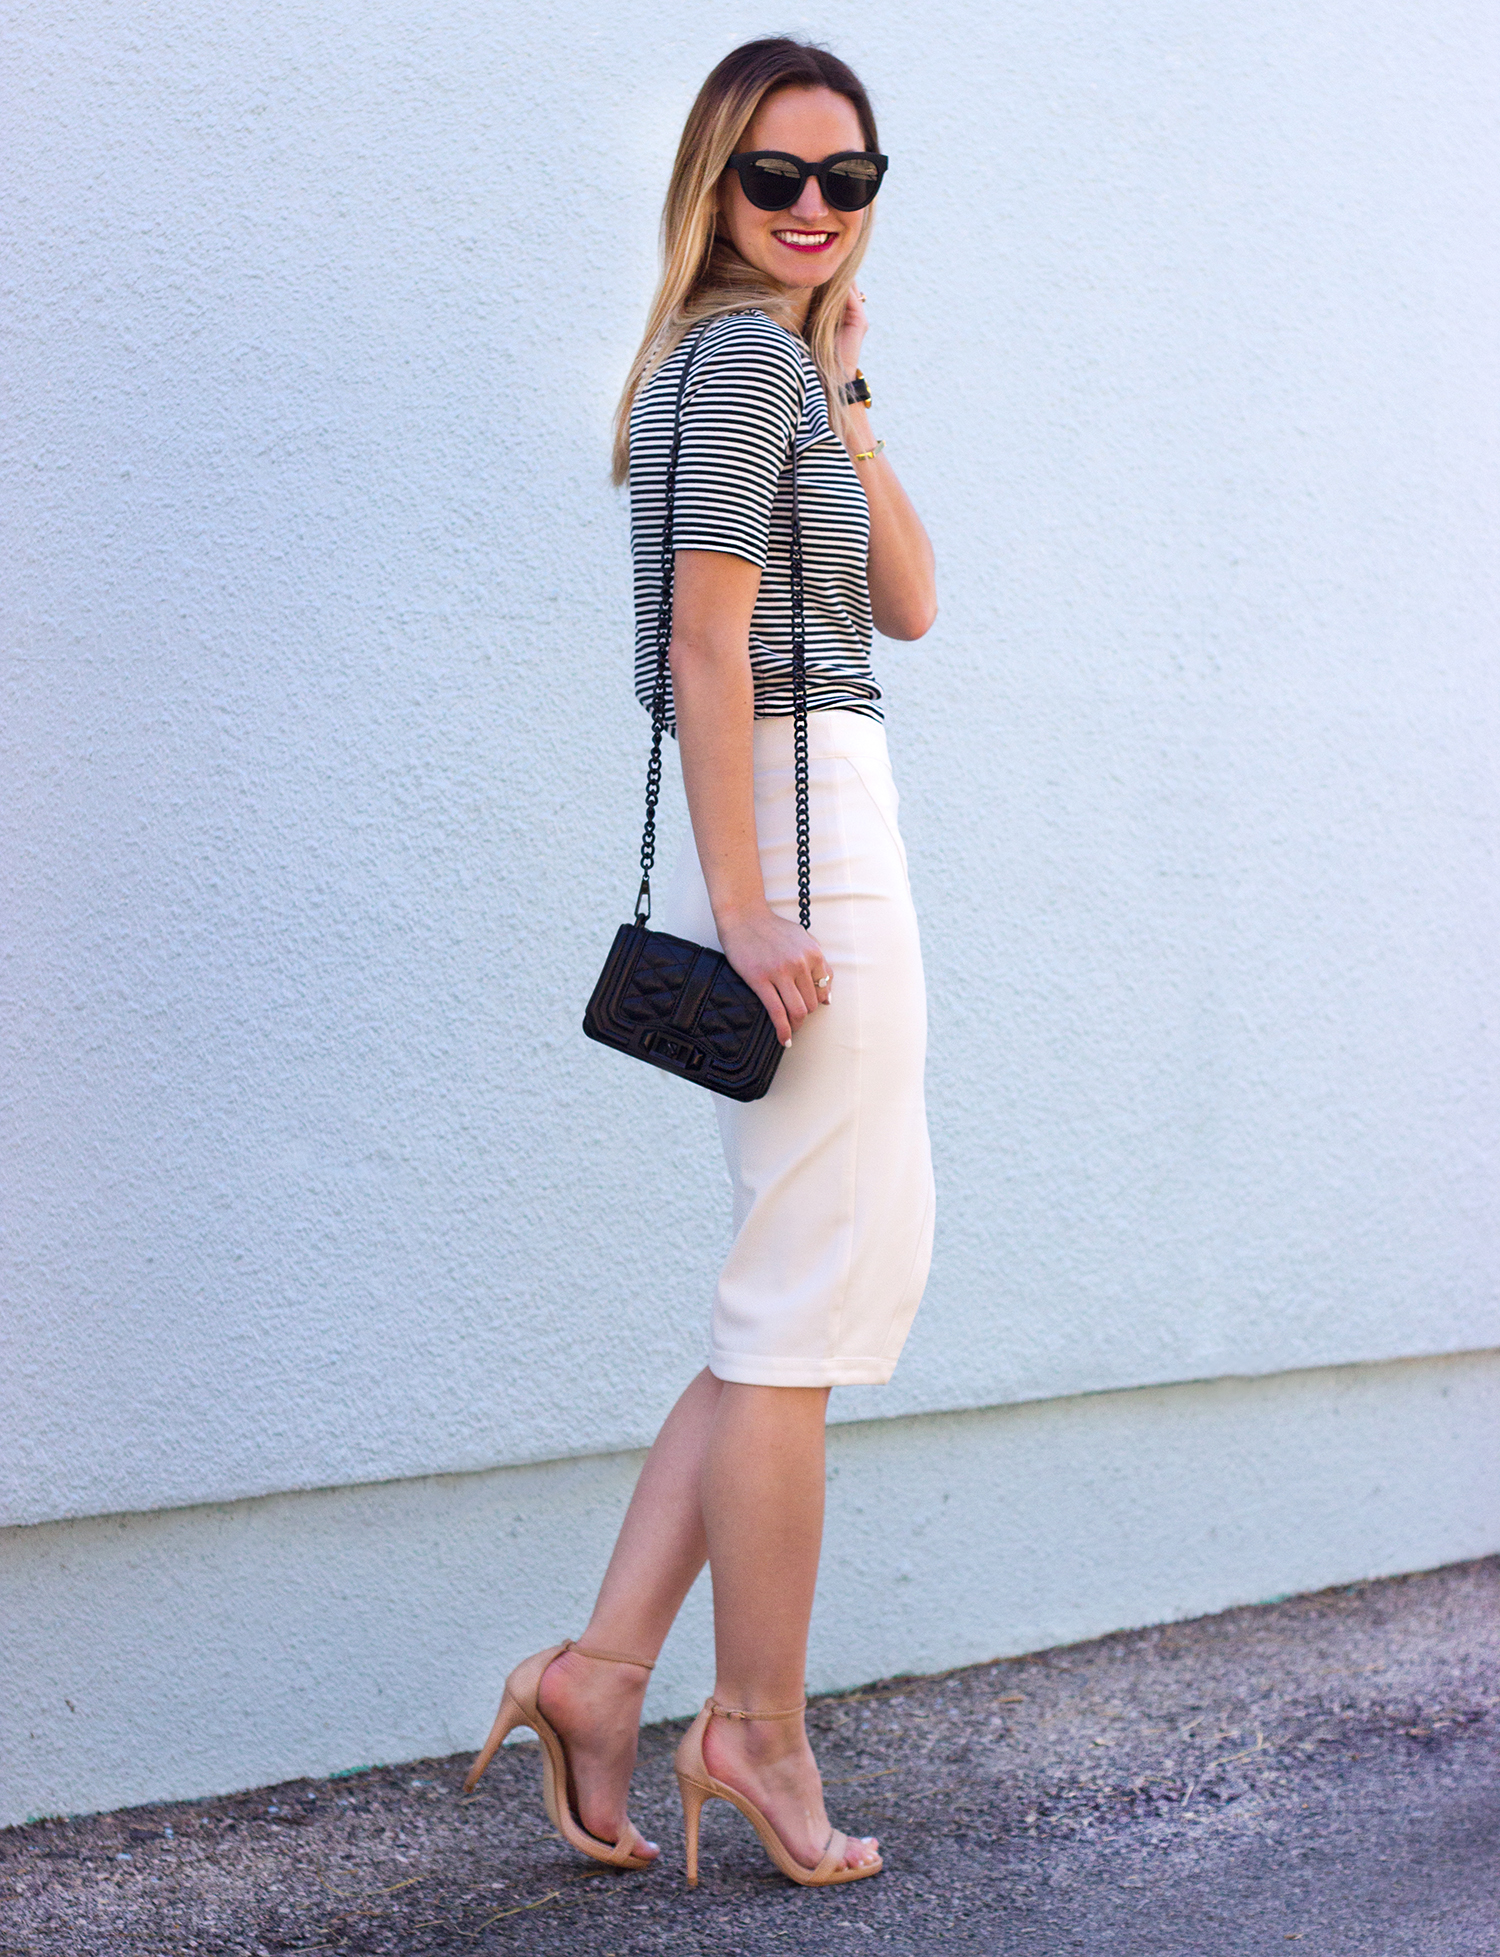 livvyland-blog-olivia-watson-austin-texas-fashion-blogger-steve-madden-stecy-nude-heels-cupcakes-and-cashmere-white-pencil-skirt-madewell-striped-tee-shirt-4